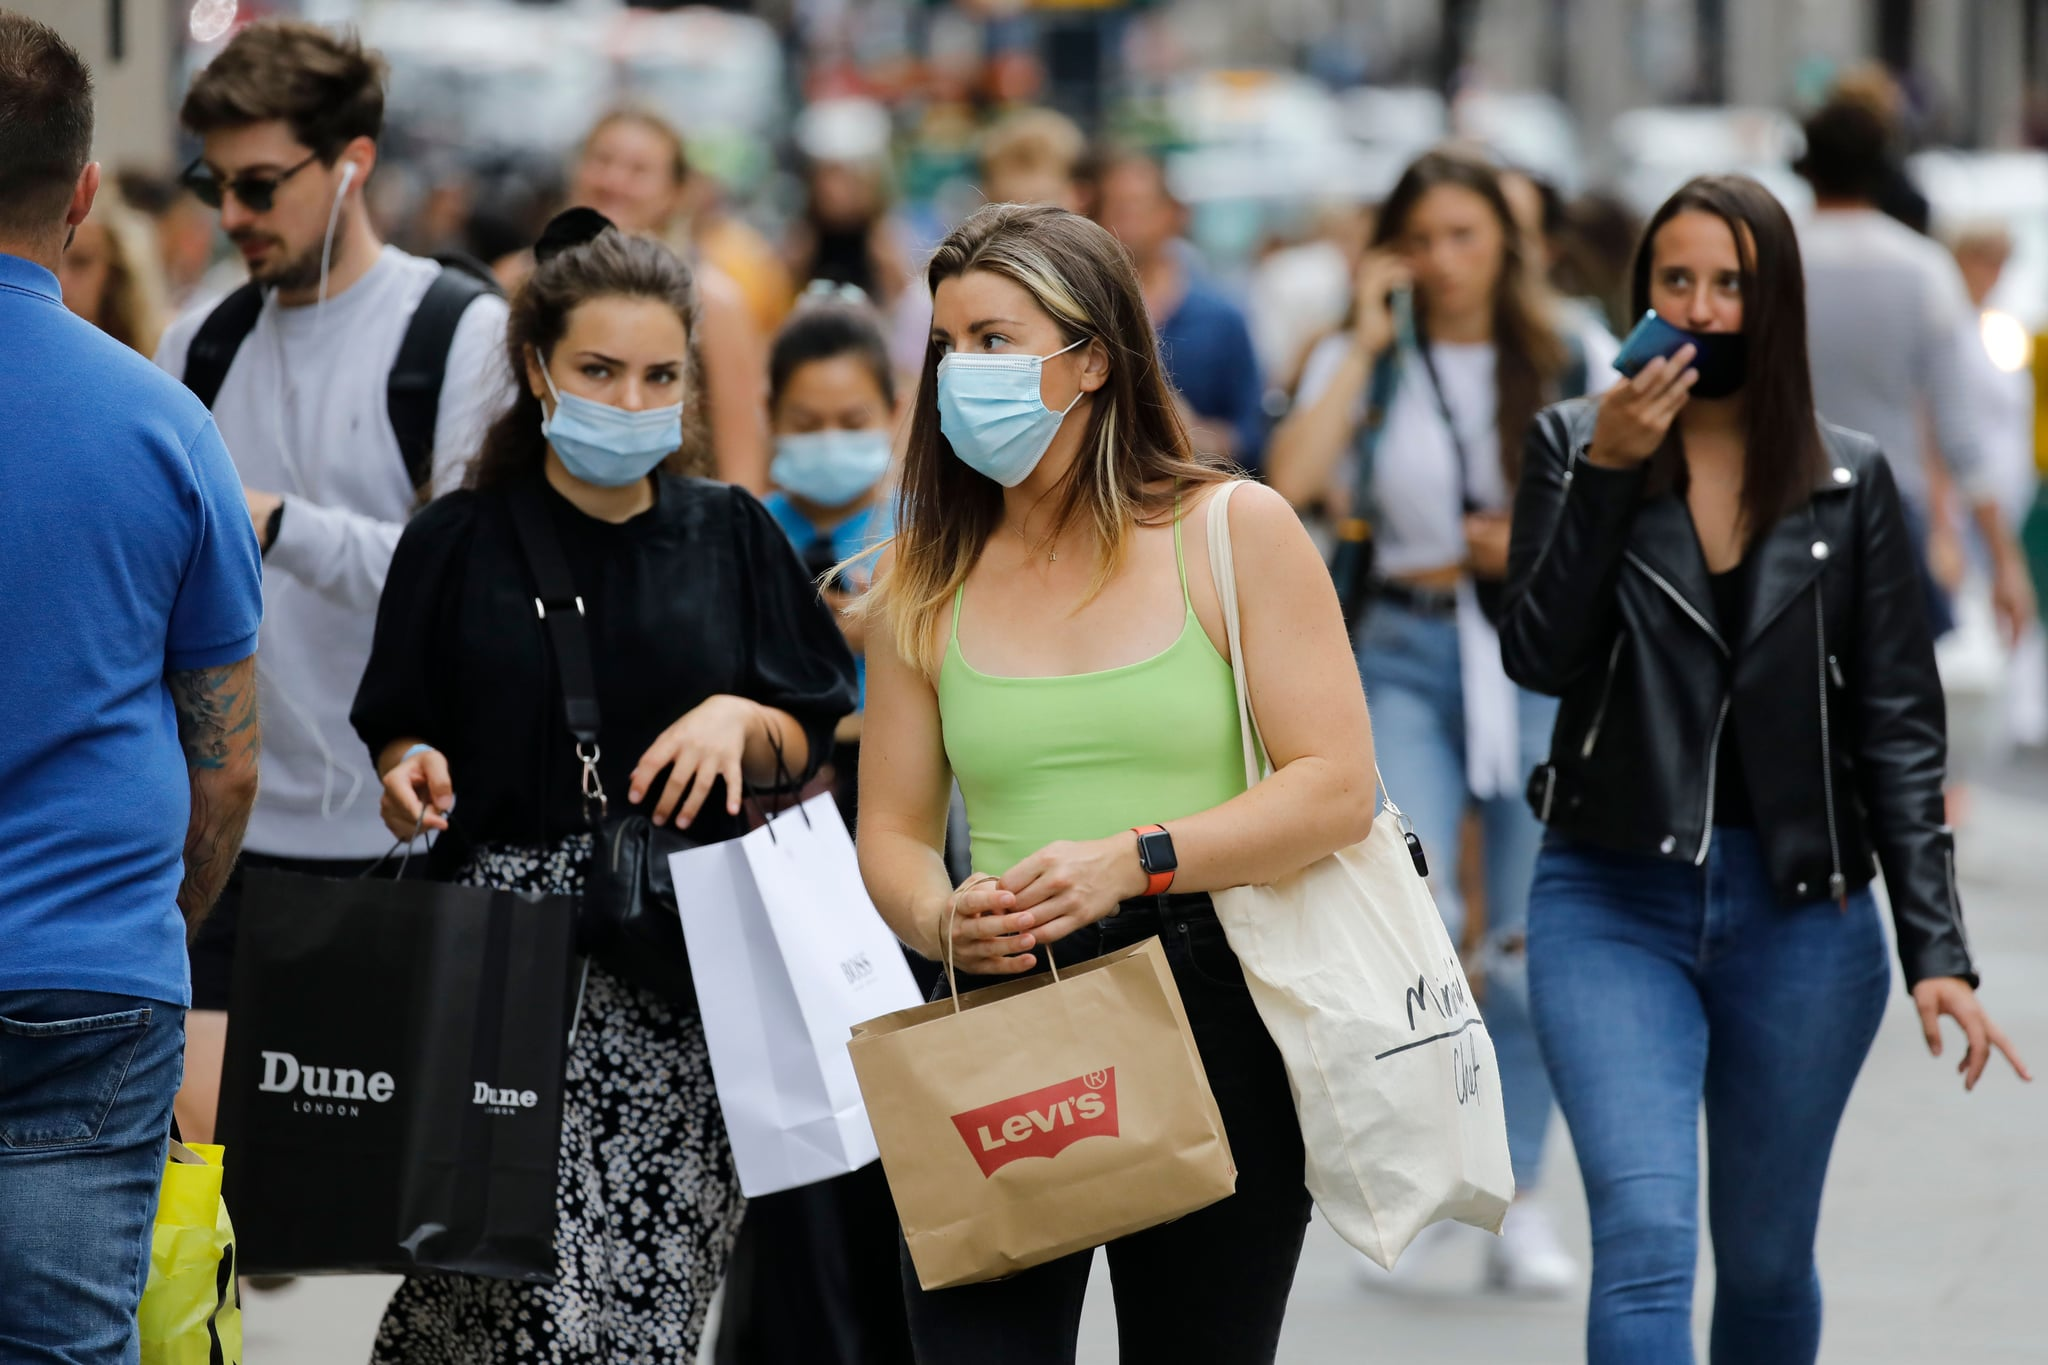 Shoppers wear face masks on Oxford Street om London on July 24, 2020, after wearing facemasks in shops and supermarkets became compulsory in England as a measure to combat the spread of the novel coronavirus. (Photo by Tolga AKMEN / AFP) (Photo by TOLGA AKMEN/AFP via Getty Images)